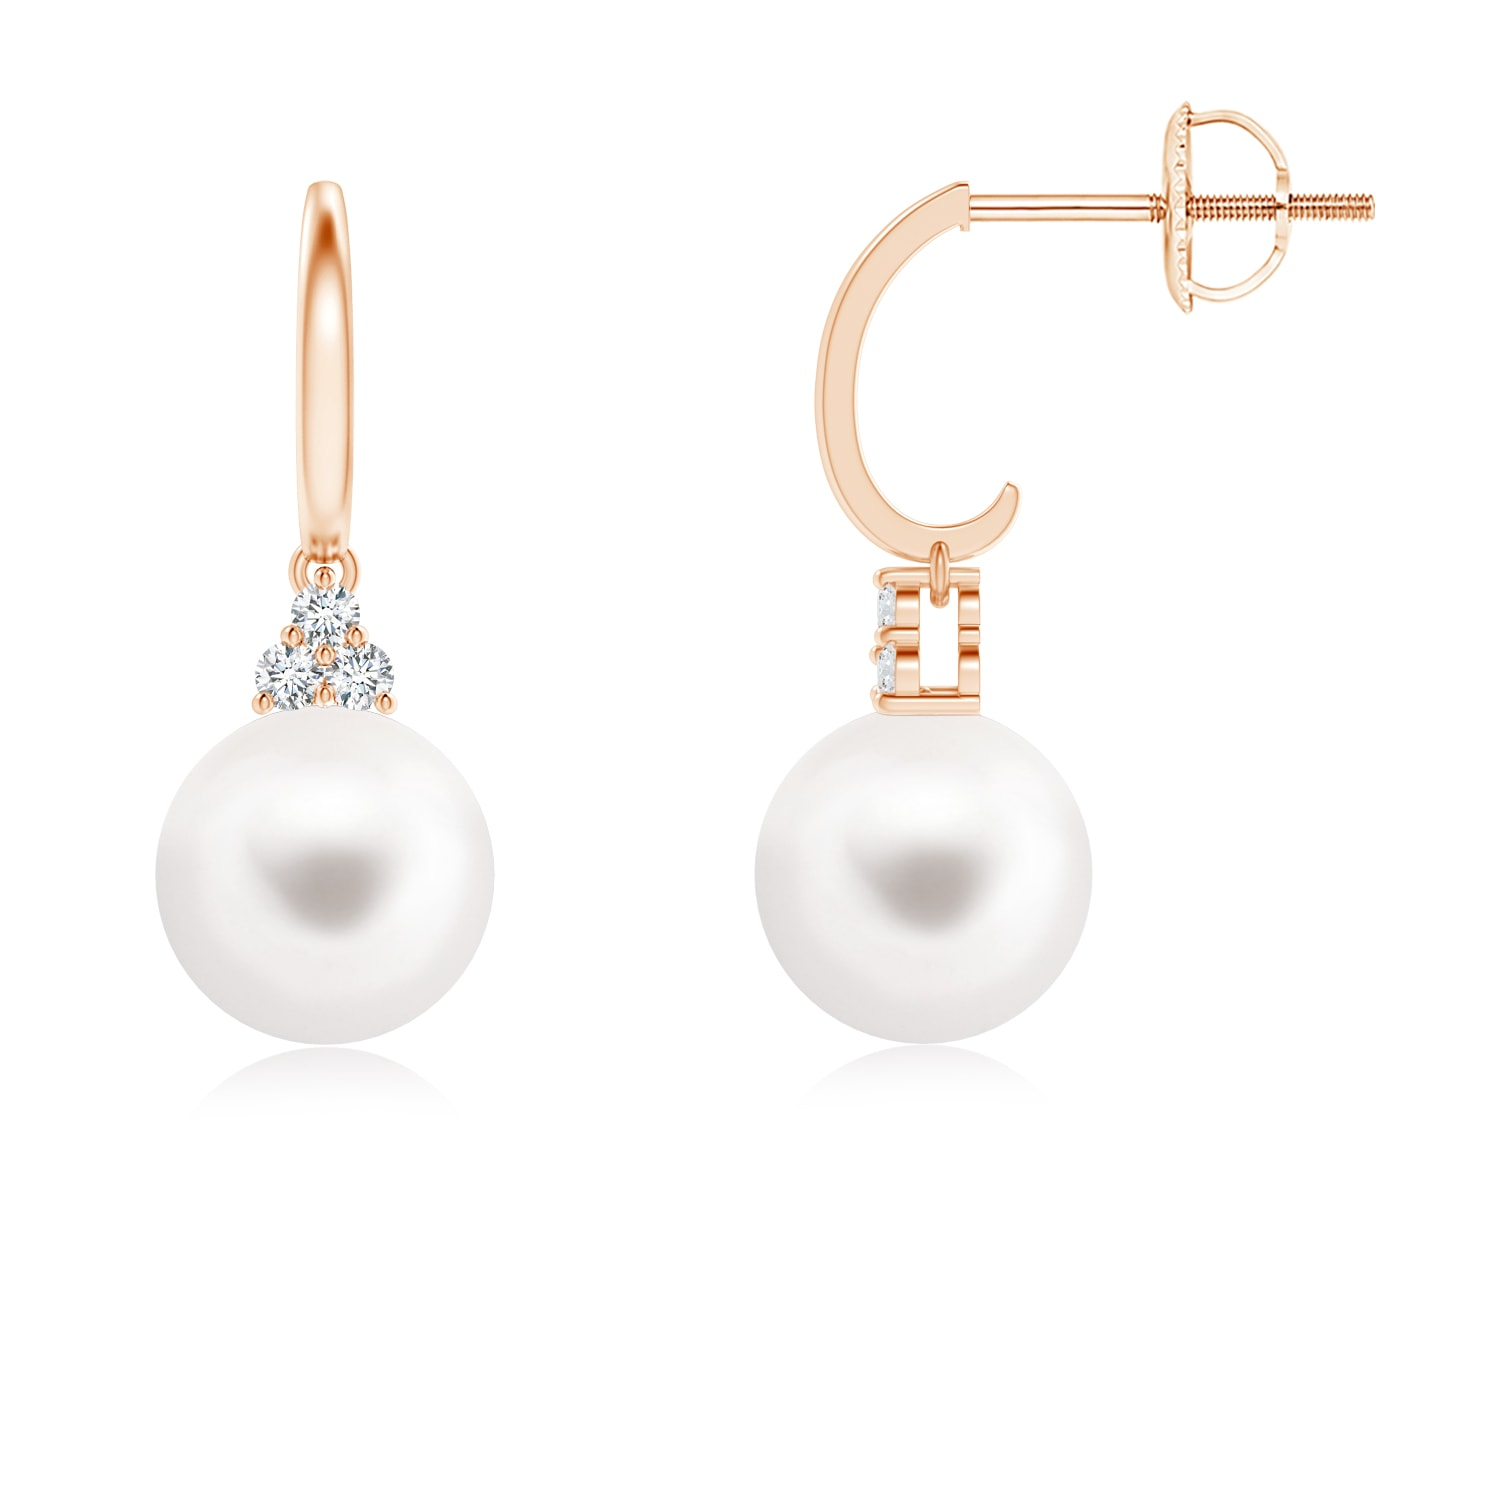 Dangling Freshwater Cultured Pearl Hoop Earrings with Trio Diamonds - Angara.com